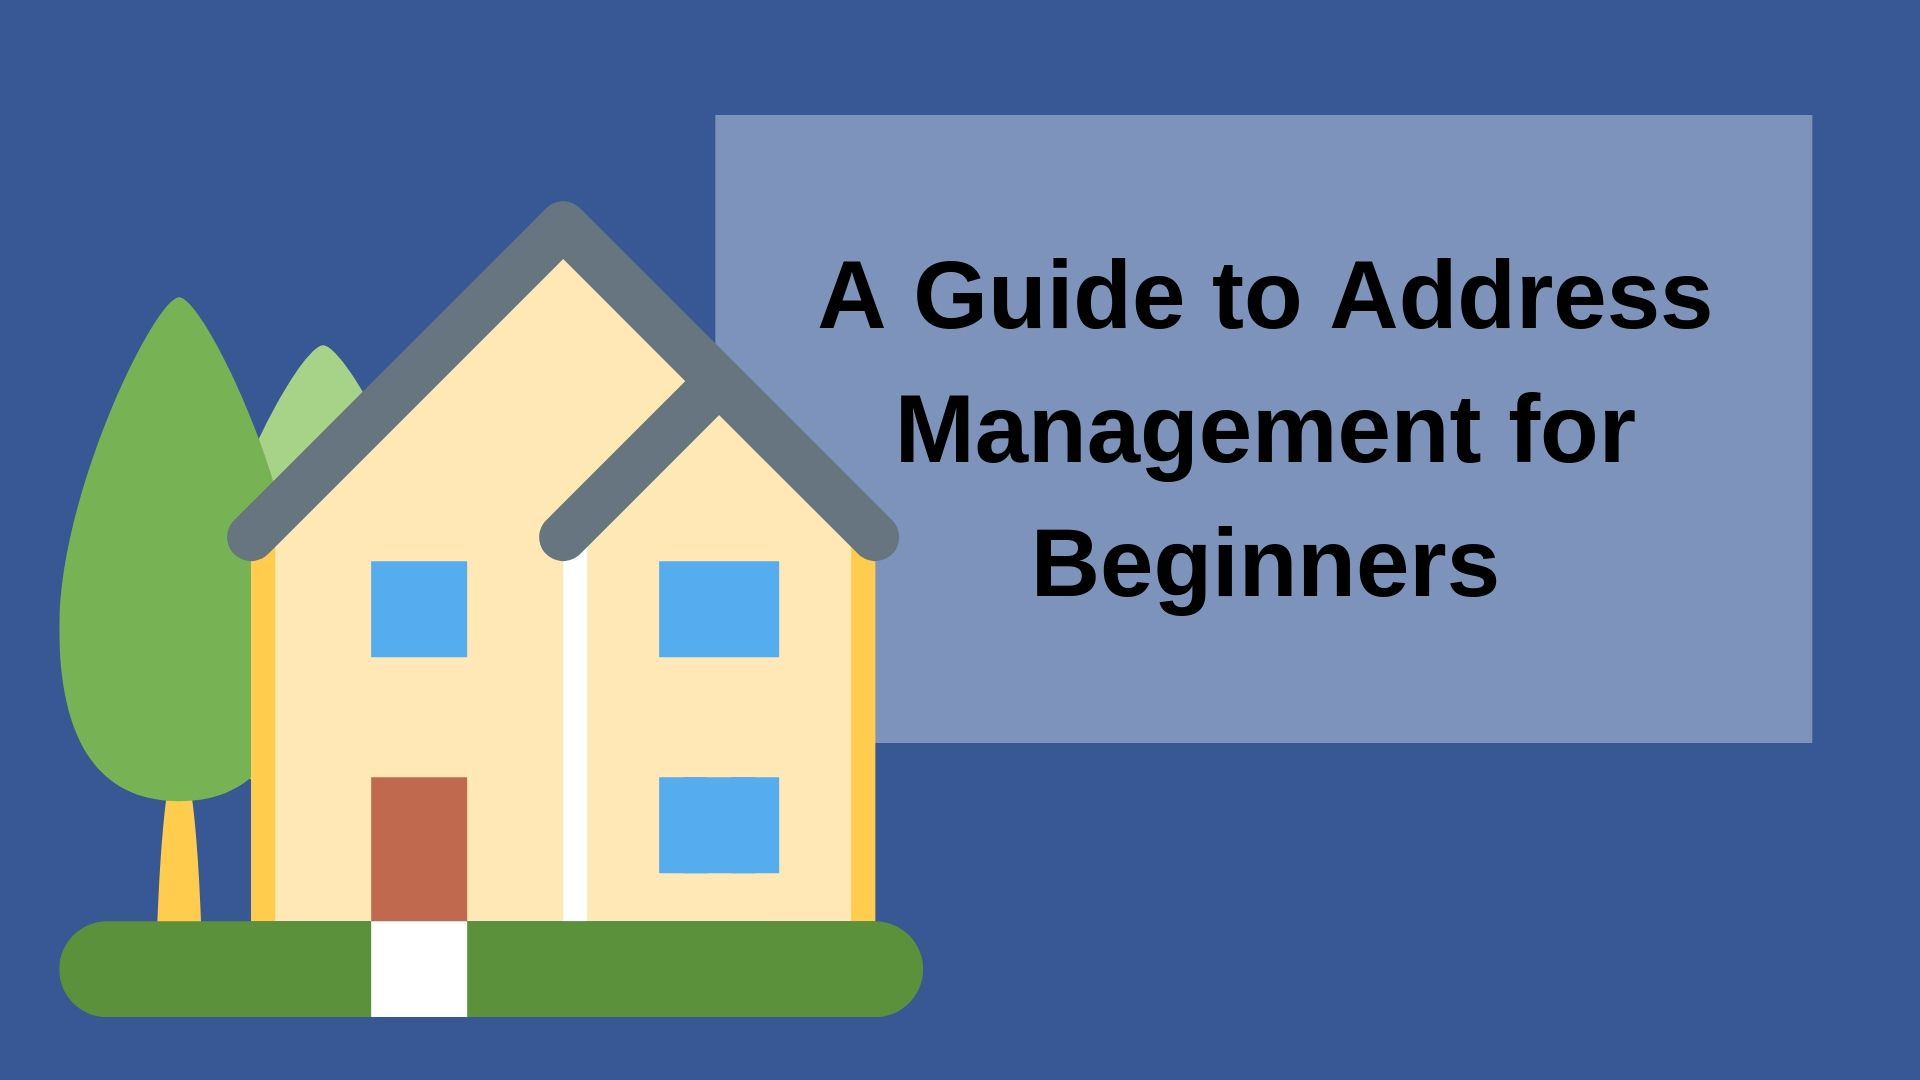 A Guide to Address Management for Beginners